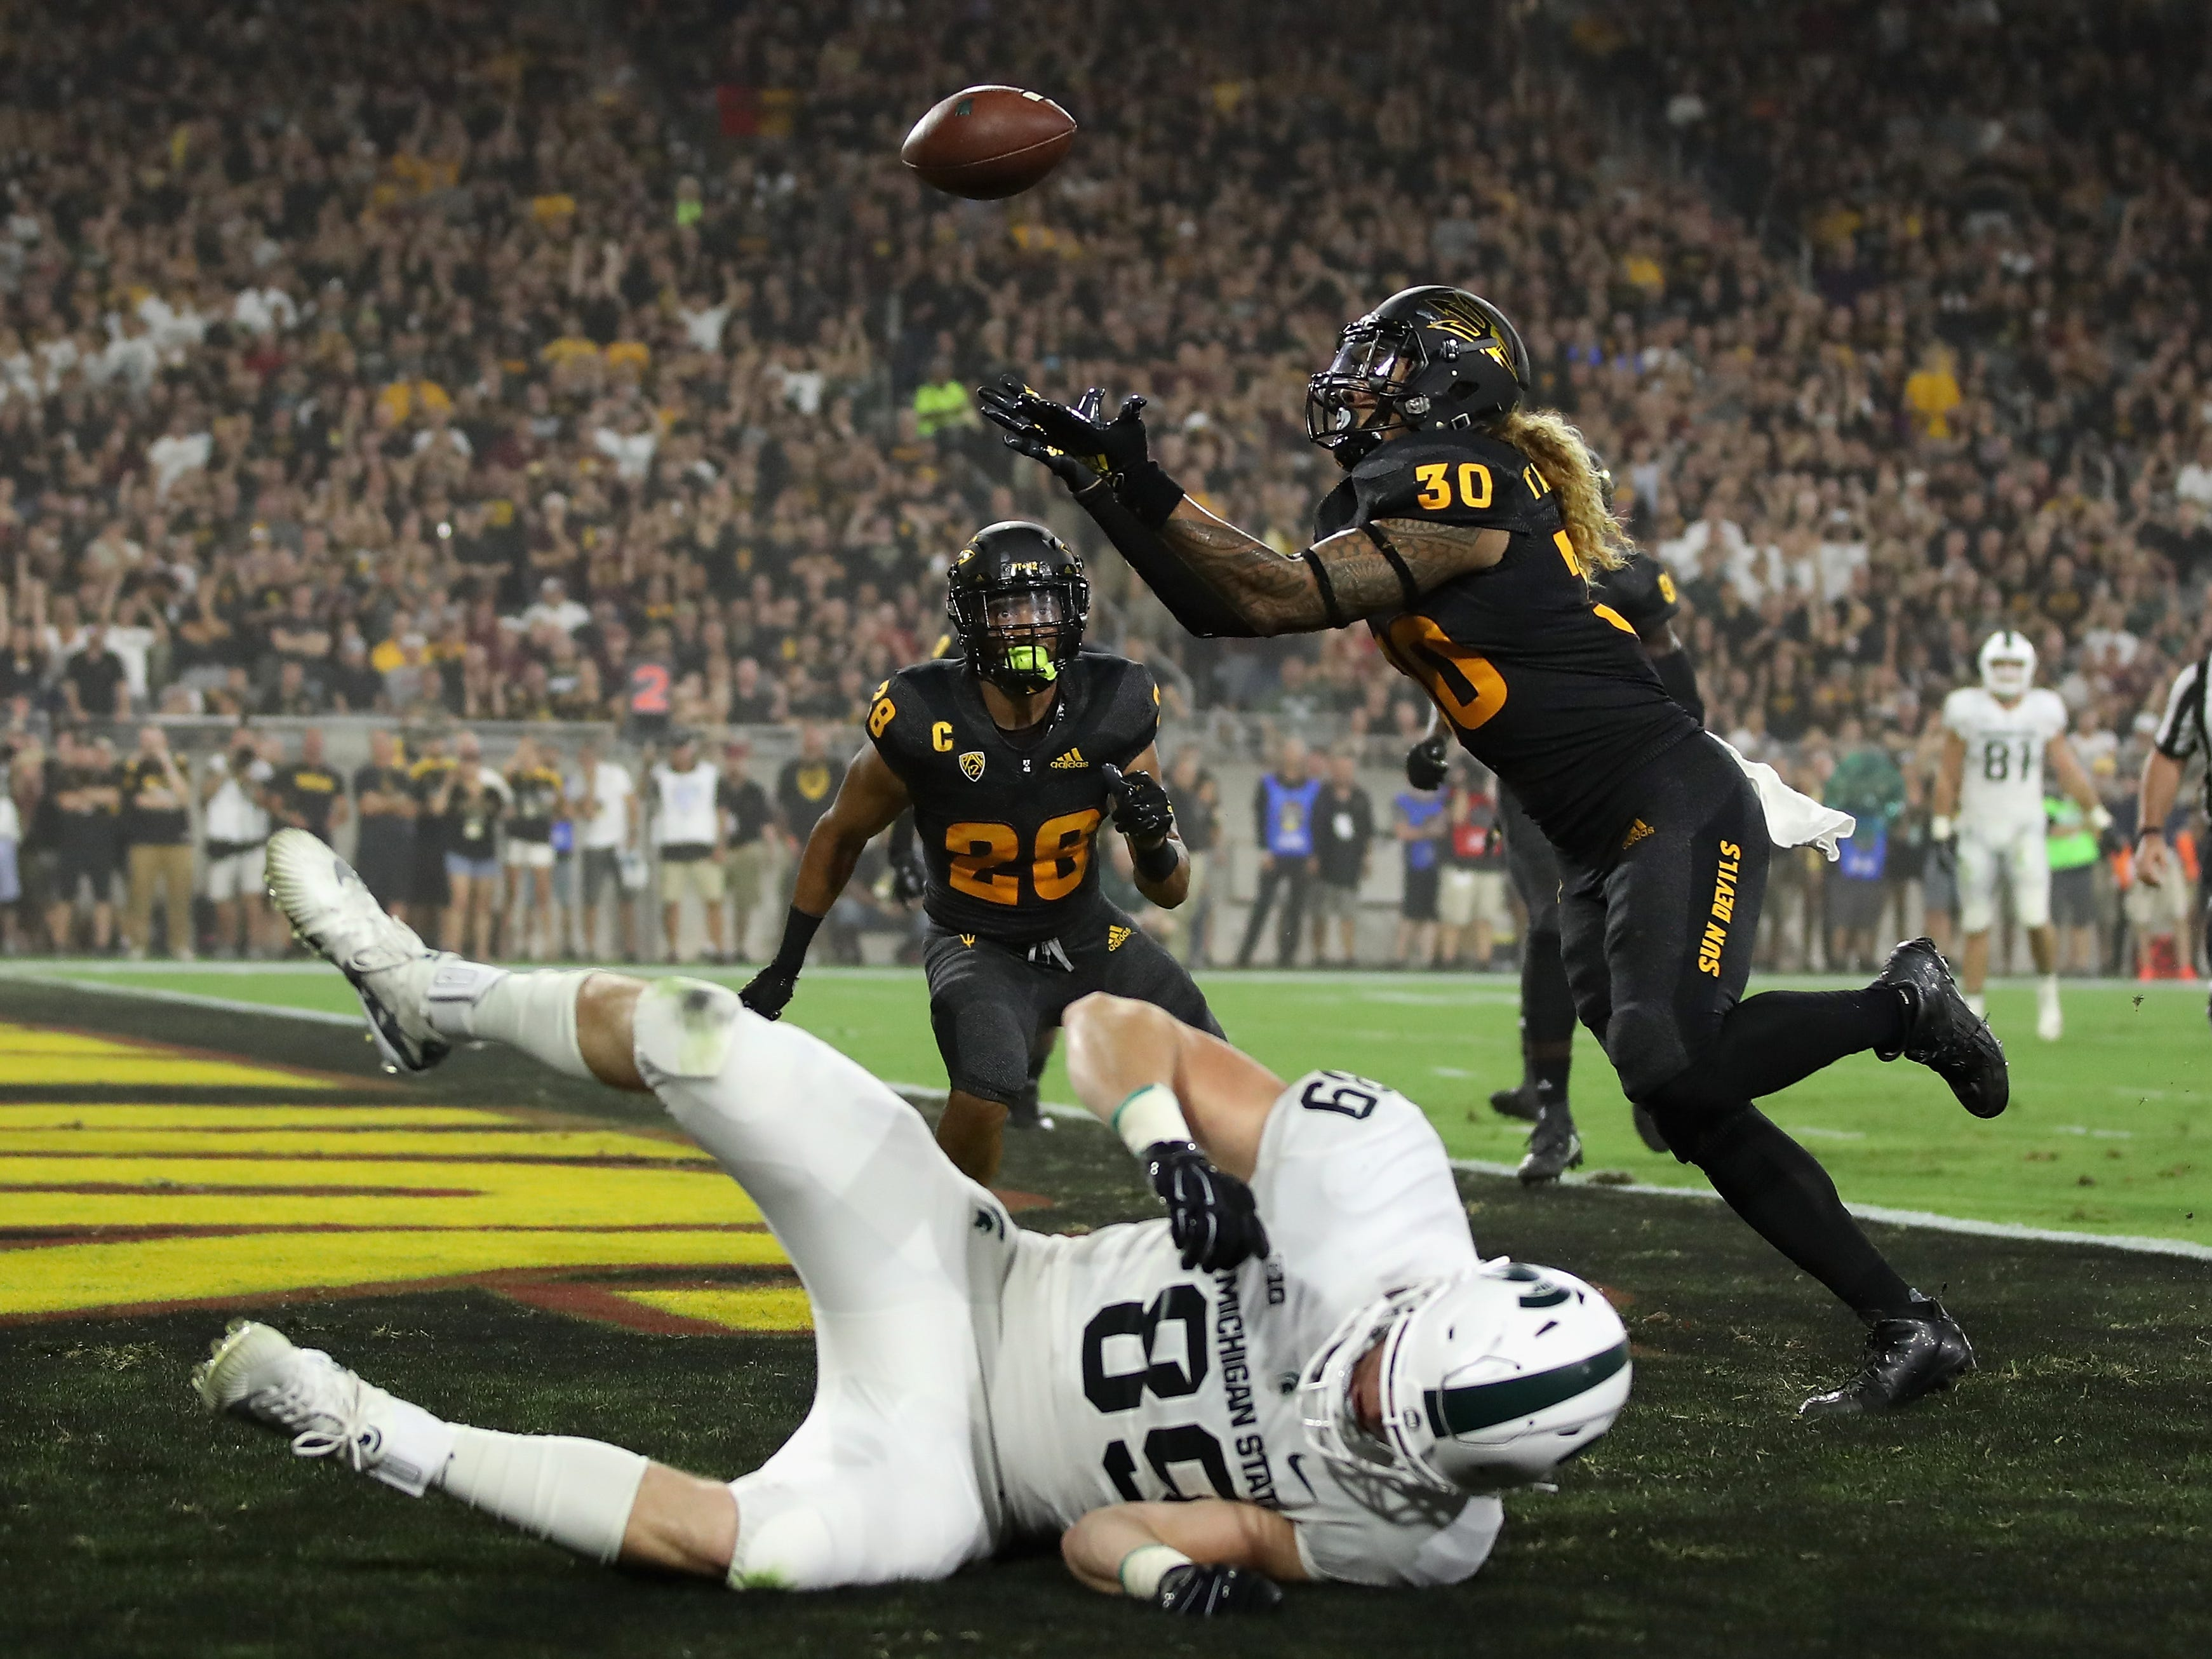 Defensive back Dasmond Tautalatasi #30 of the Arizona State Sun Devils intercepts a pass intended for tight end Matt Dotson #89 of the Michigan State Spartans during the first half of the college football game at Sun Devil Stadium on September 8, 2018 in Tempe, Arizona.